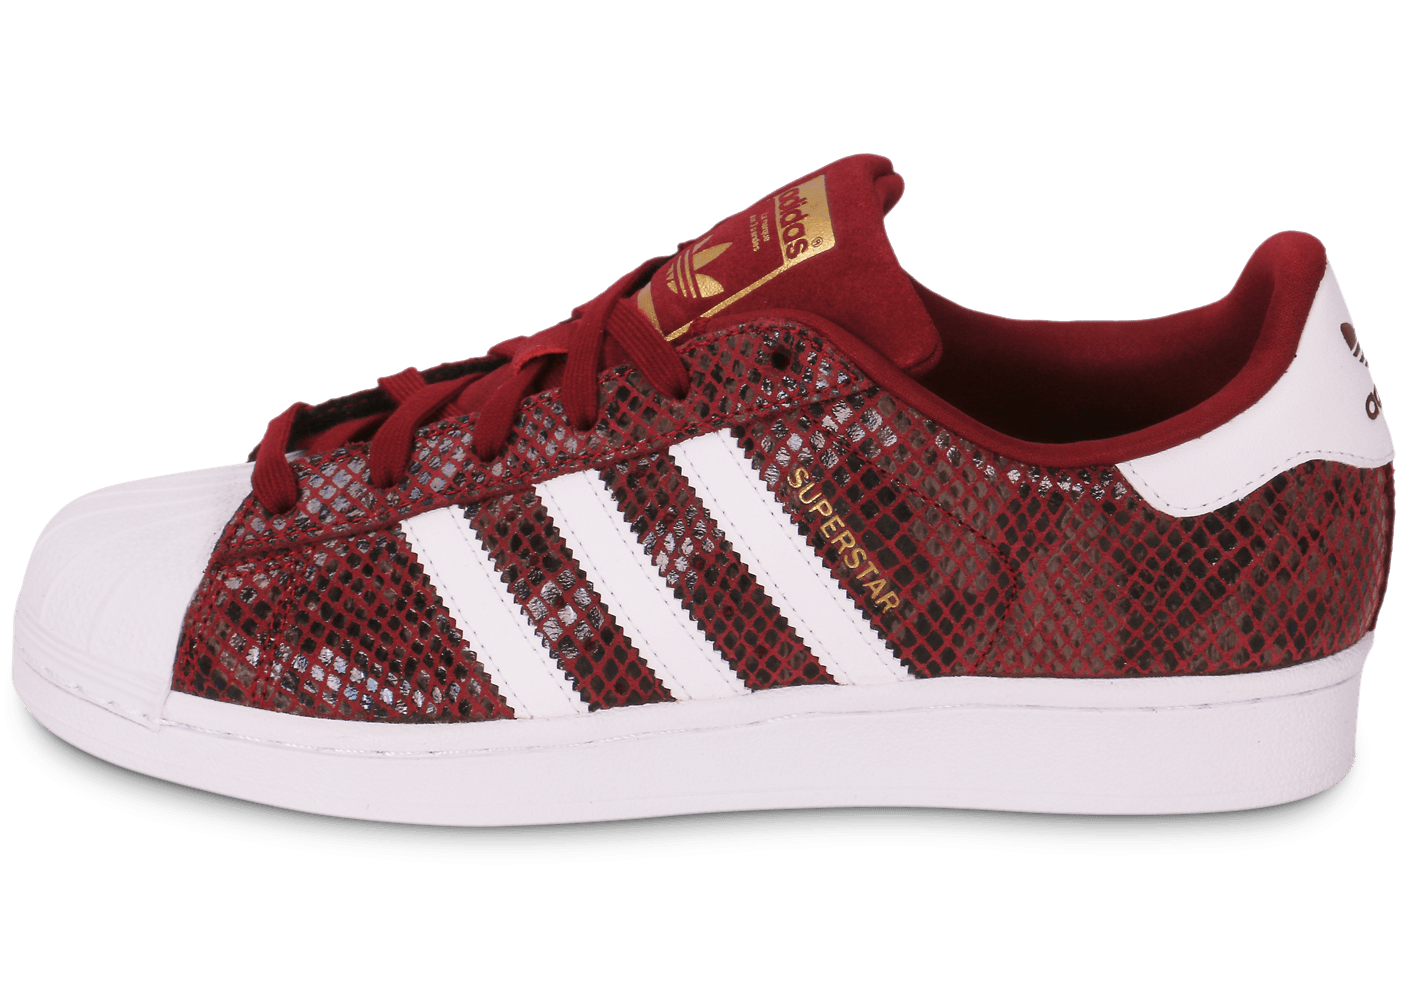 adidas superstar femme rouge bordeaux